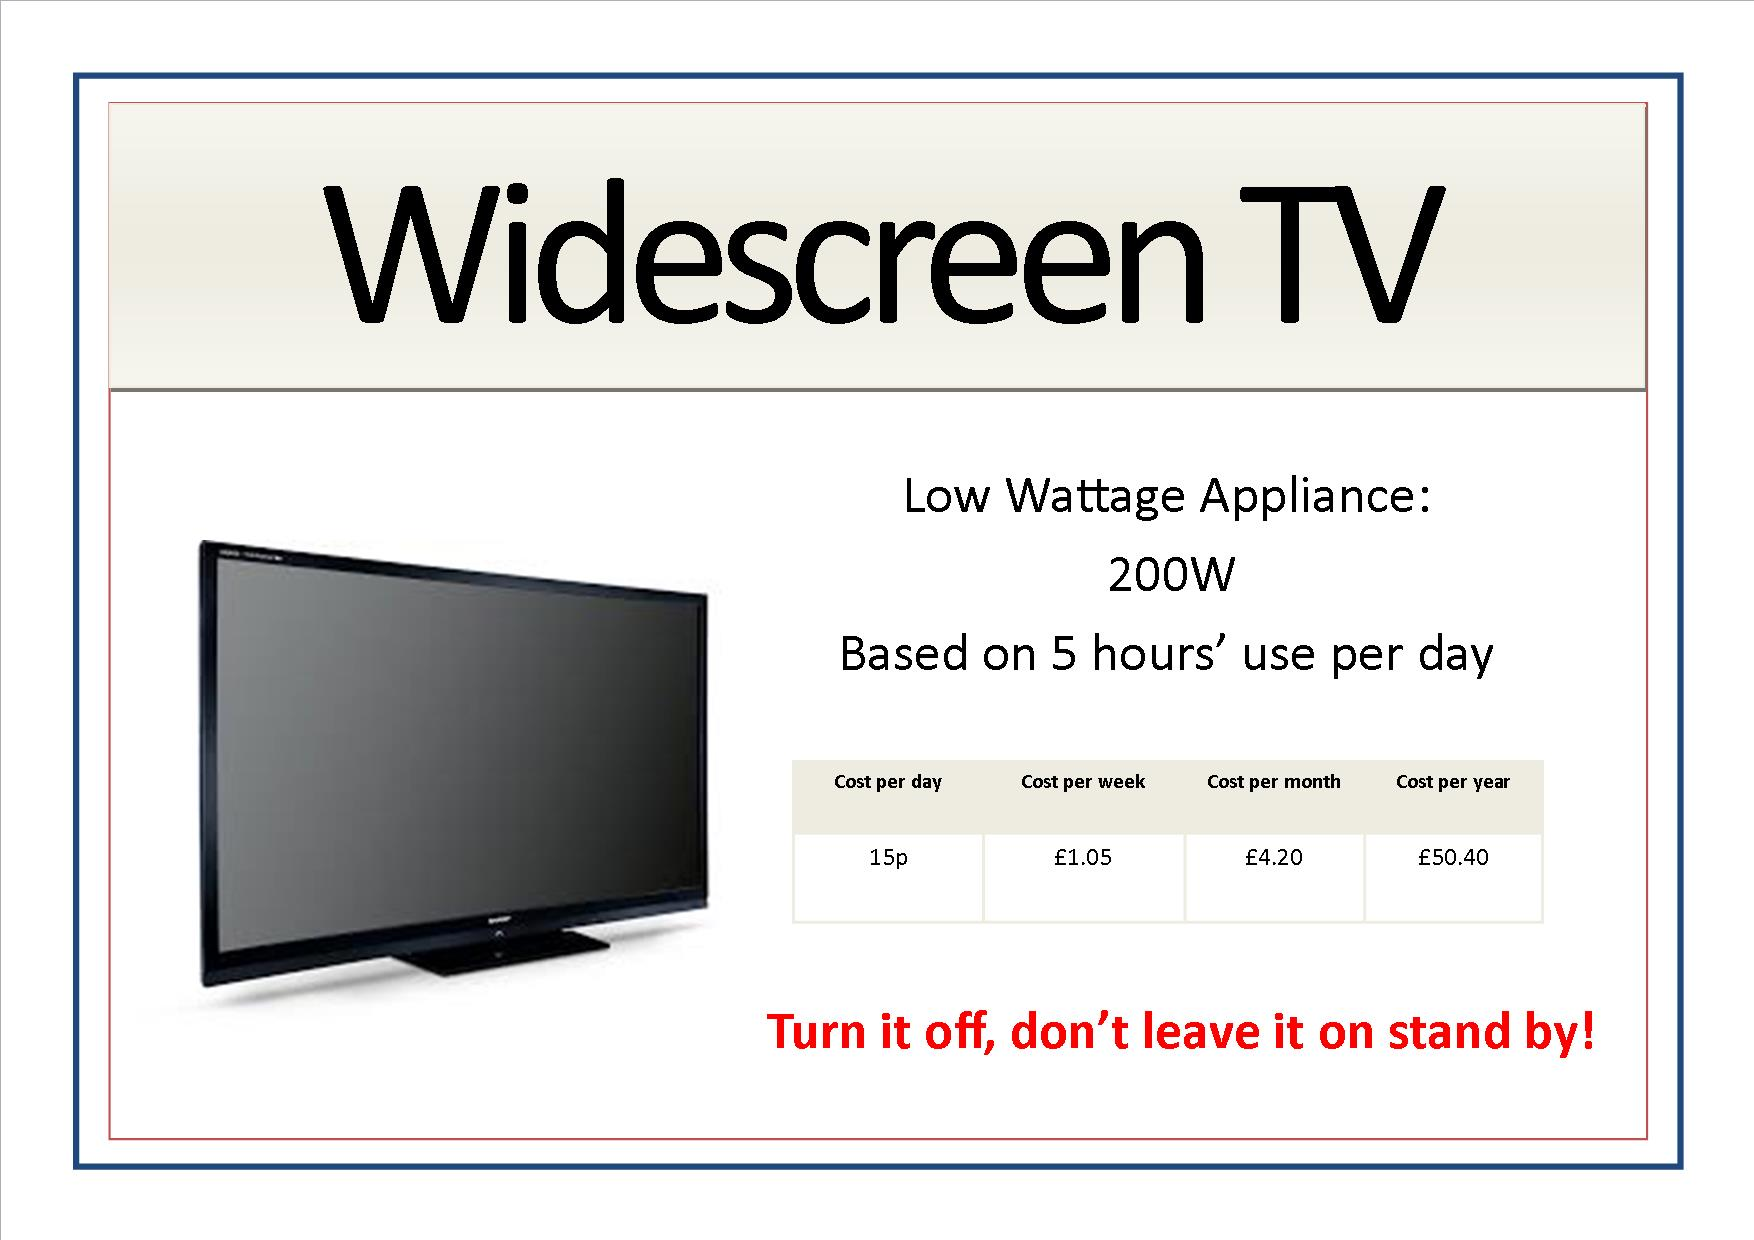 Appliance signs edit4 - widescreen tv